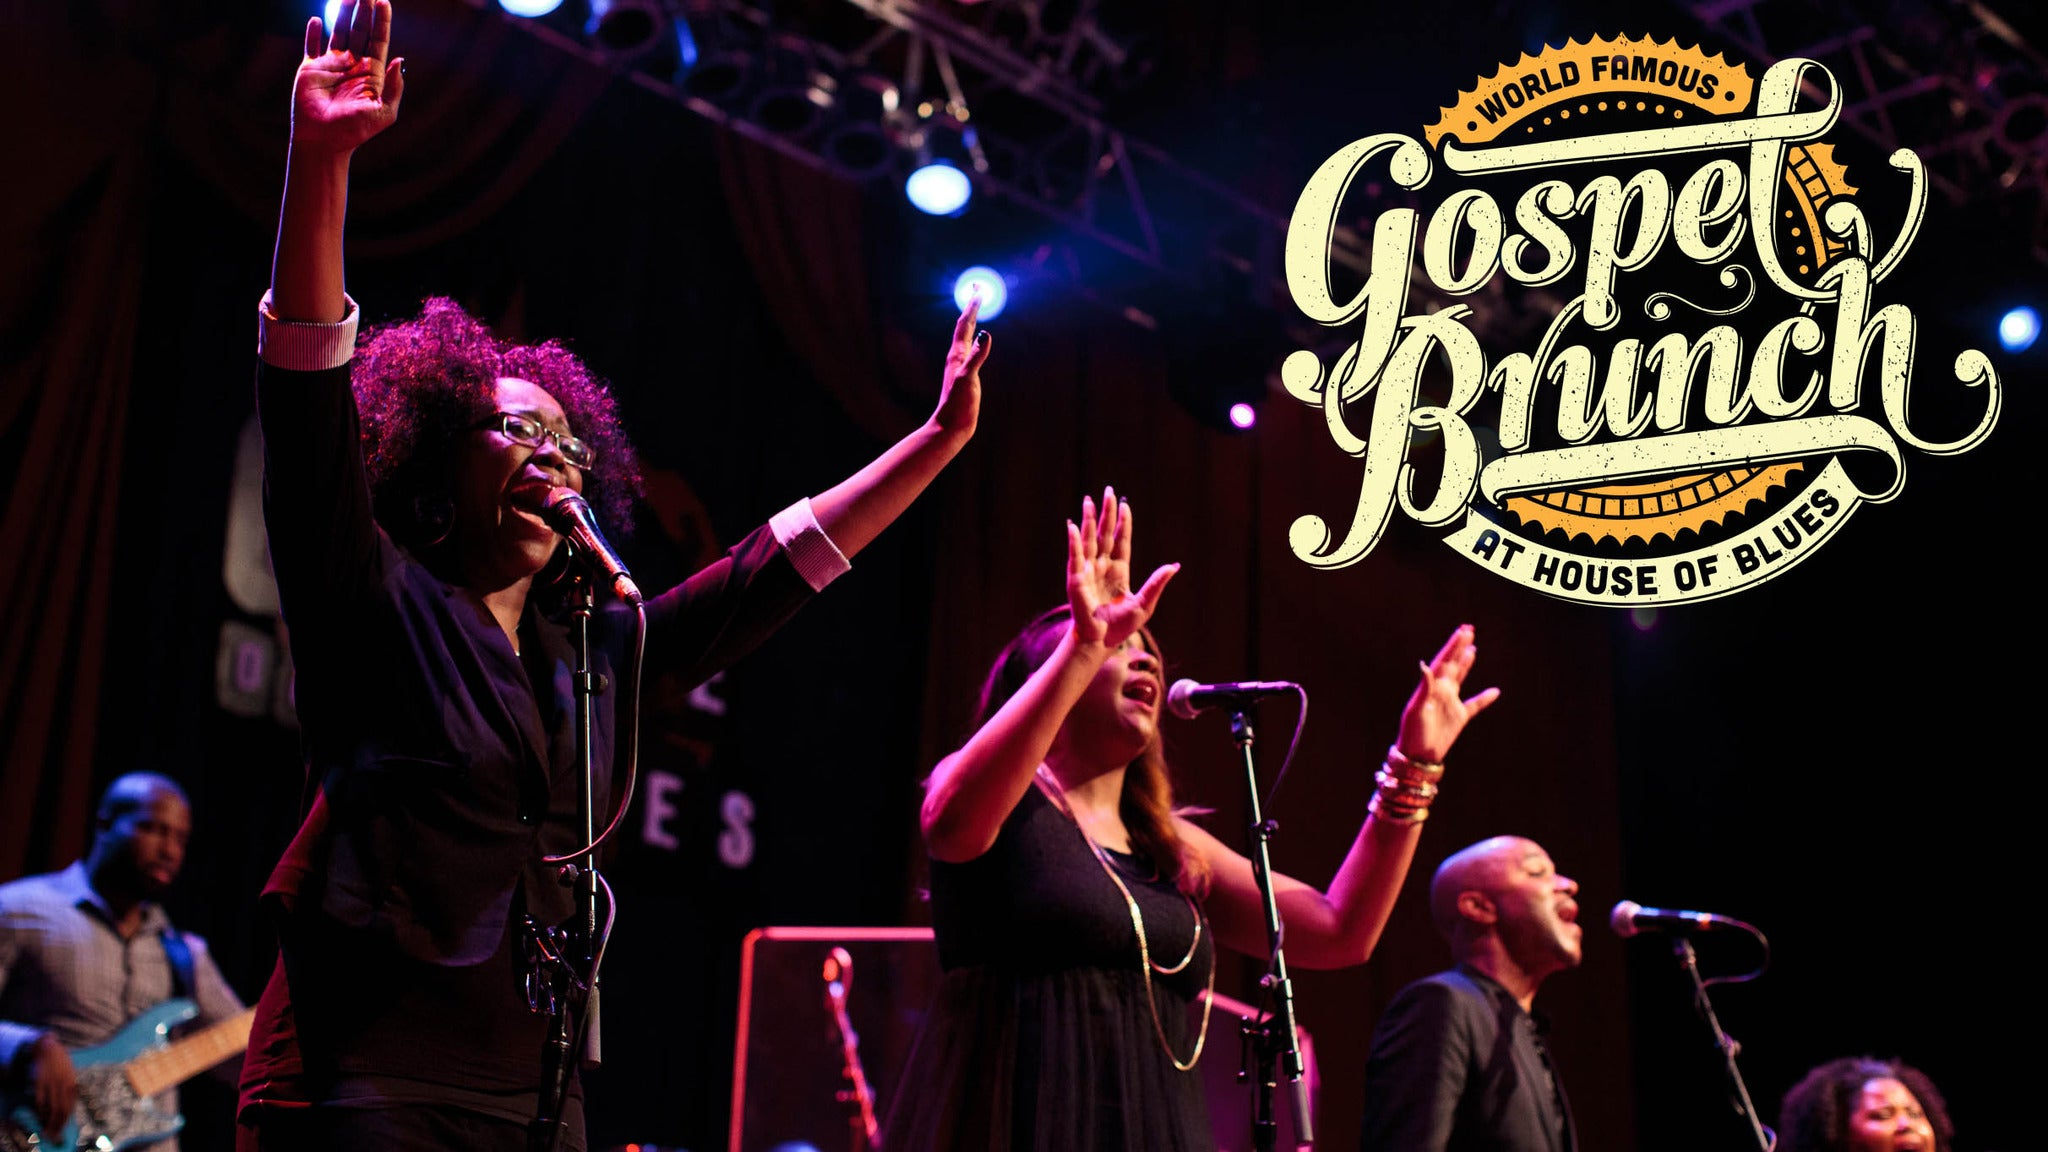 SORRY, THIS EVENT IS NO LONGER ACTIVE<br>World Famous Gospel Brunch at House of Blues - Orlando, FL 32830